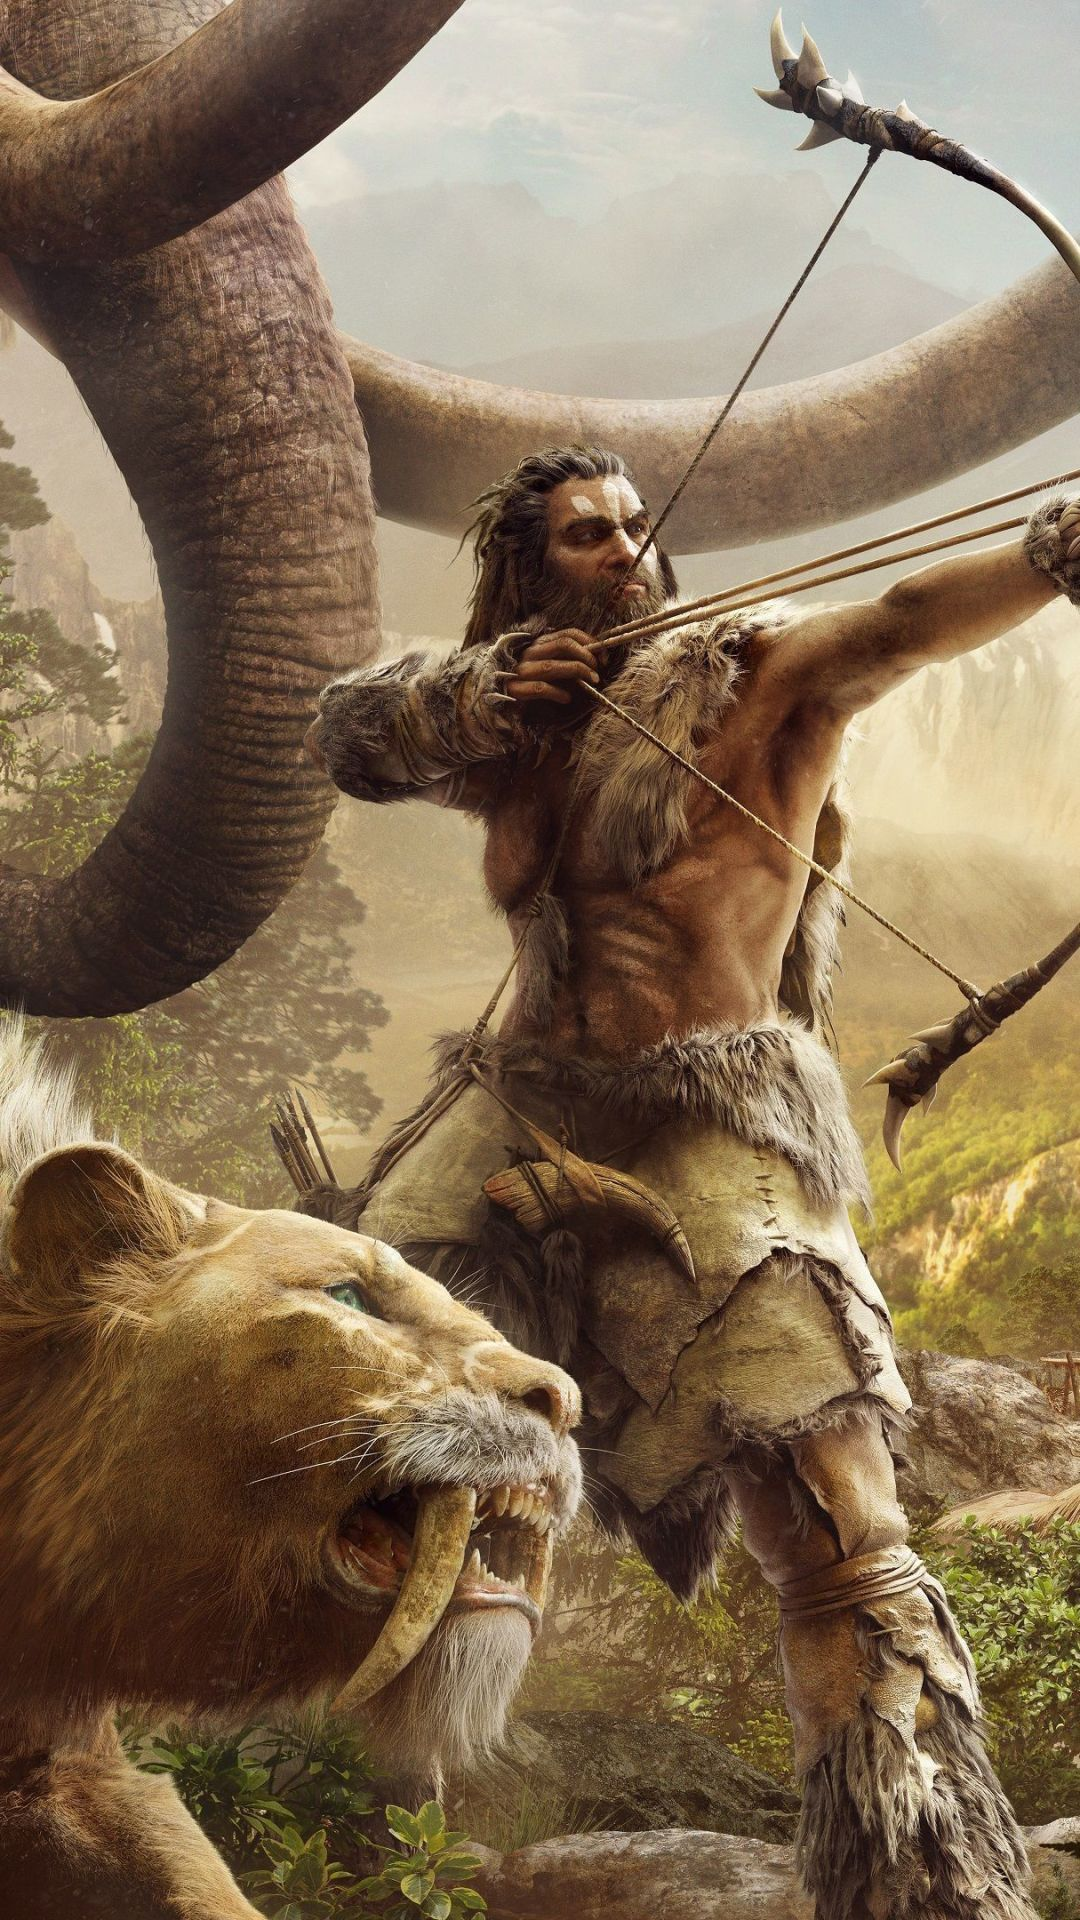 Download this Wallpaper iPhone 6  Video GameFar Cry Primal 1080x1920 for all your Phones and Tablets